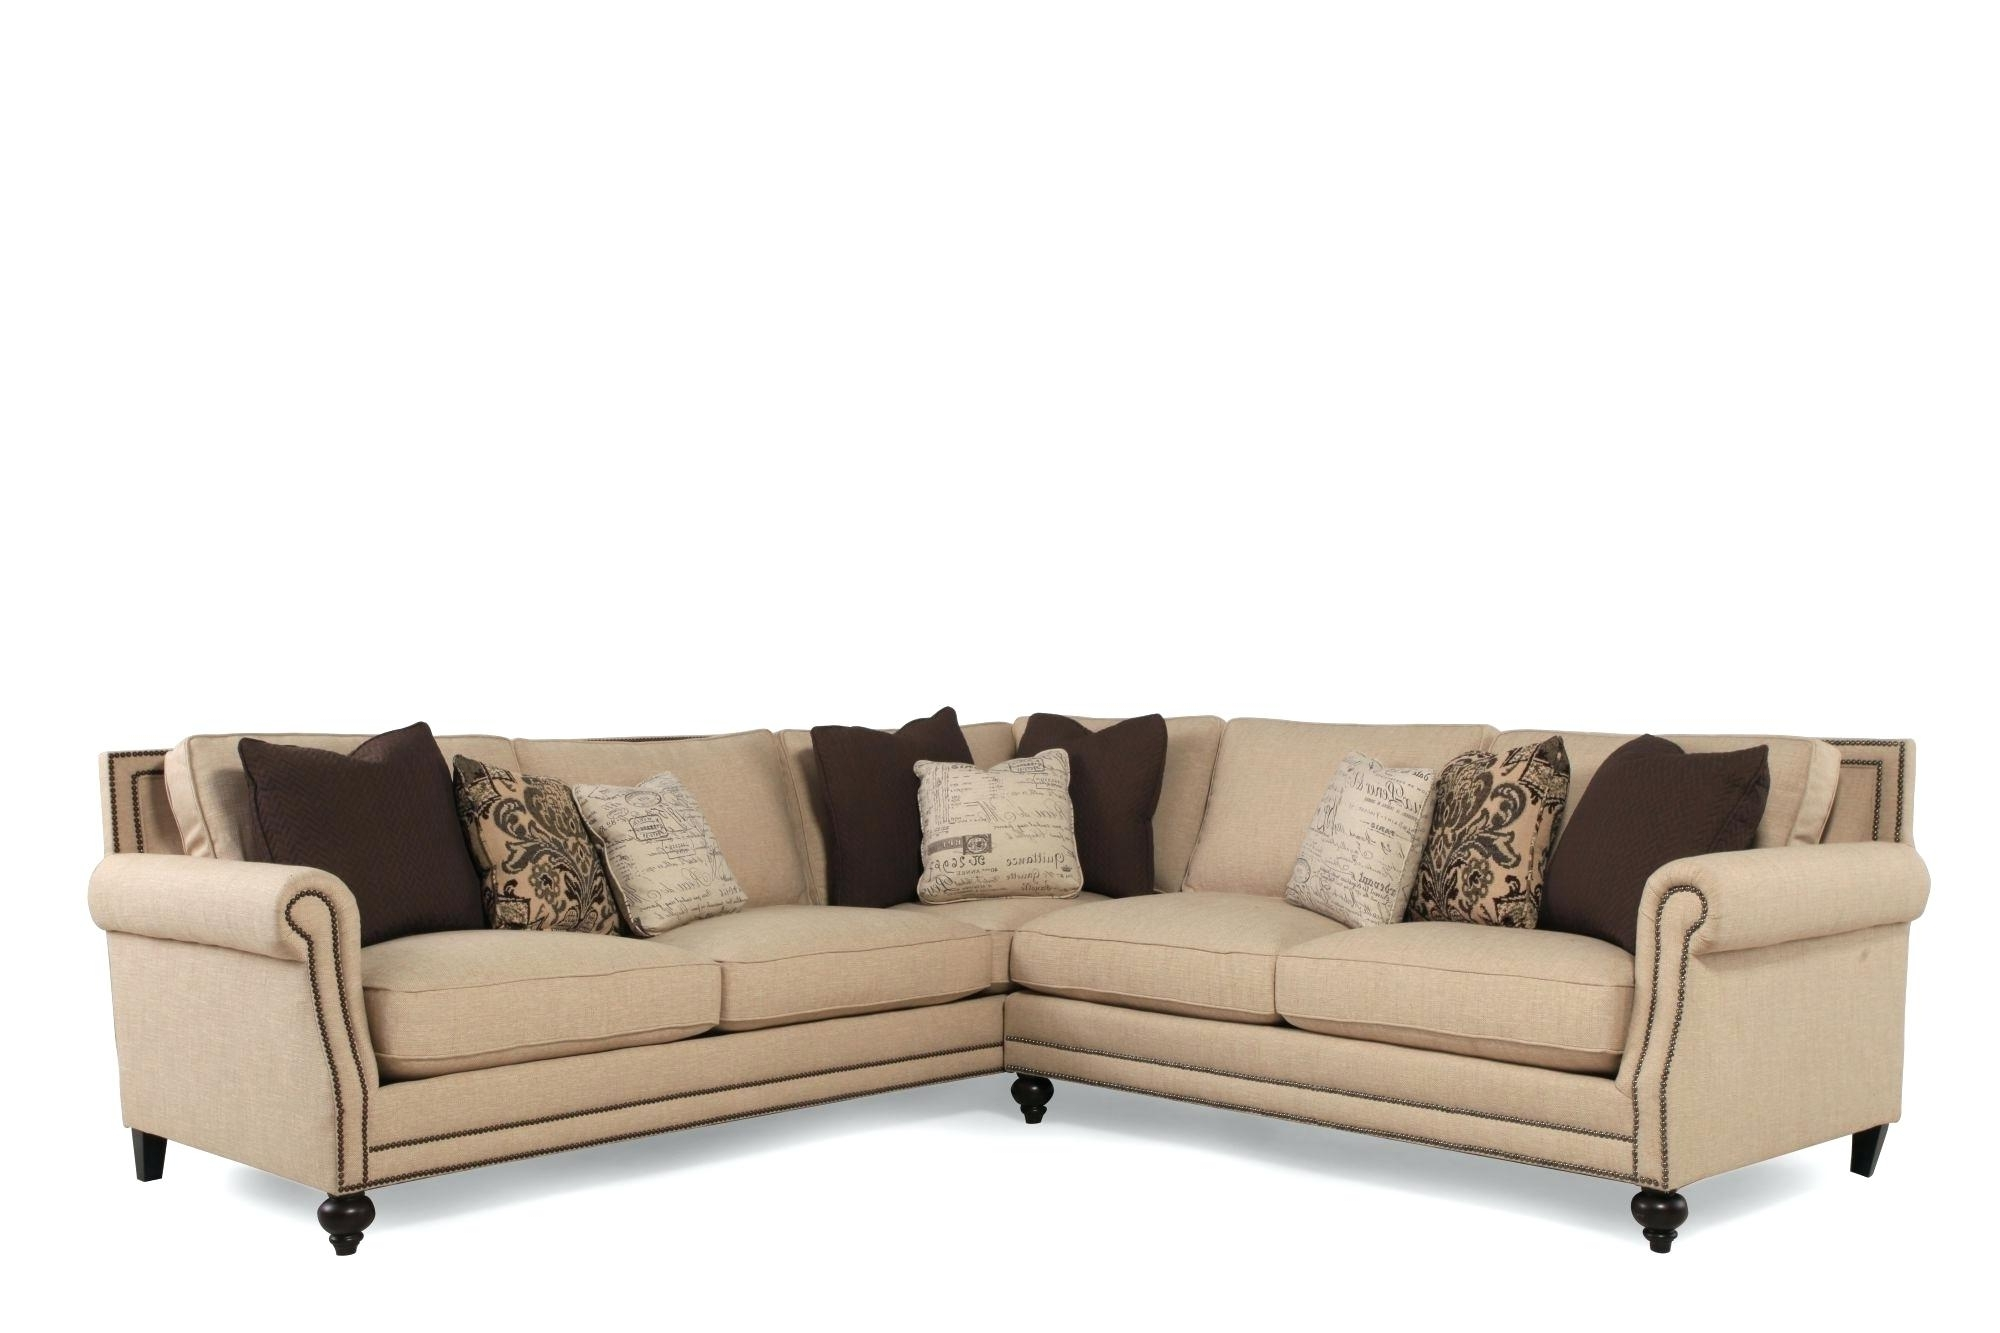 Okc Sectional Sofas Within Most Recent Sectional Sofas Okc S Cheap For Sale In Oklahoma City (Gallery 11 of 20)